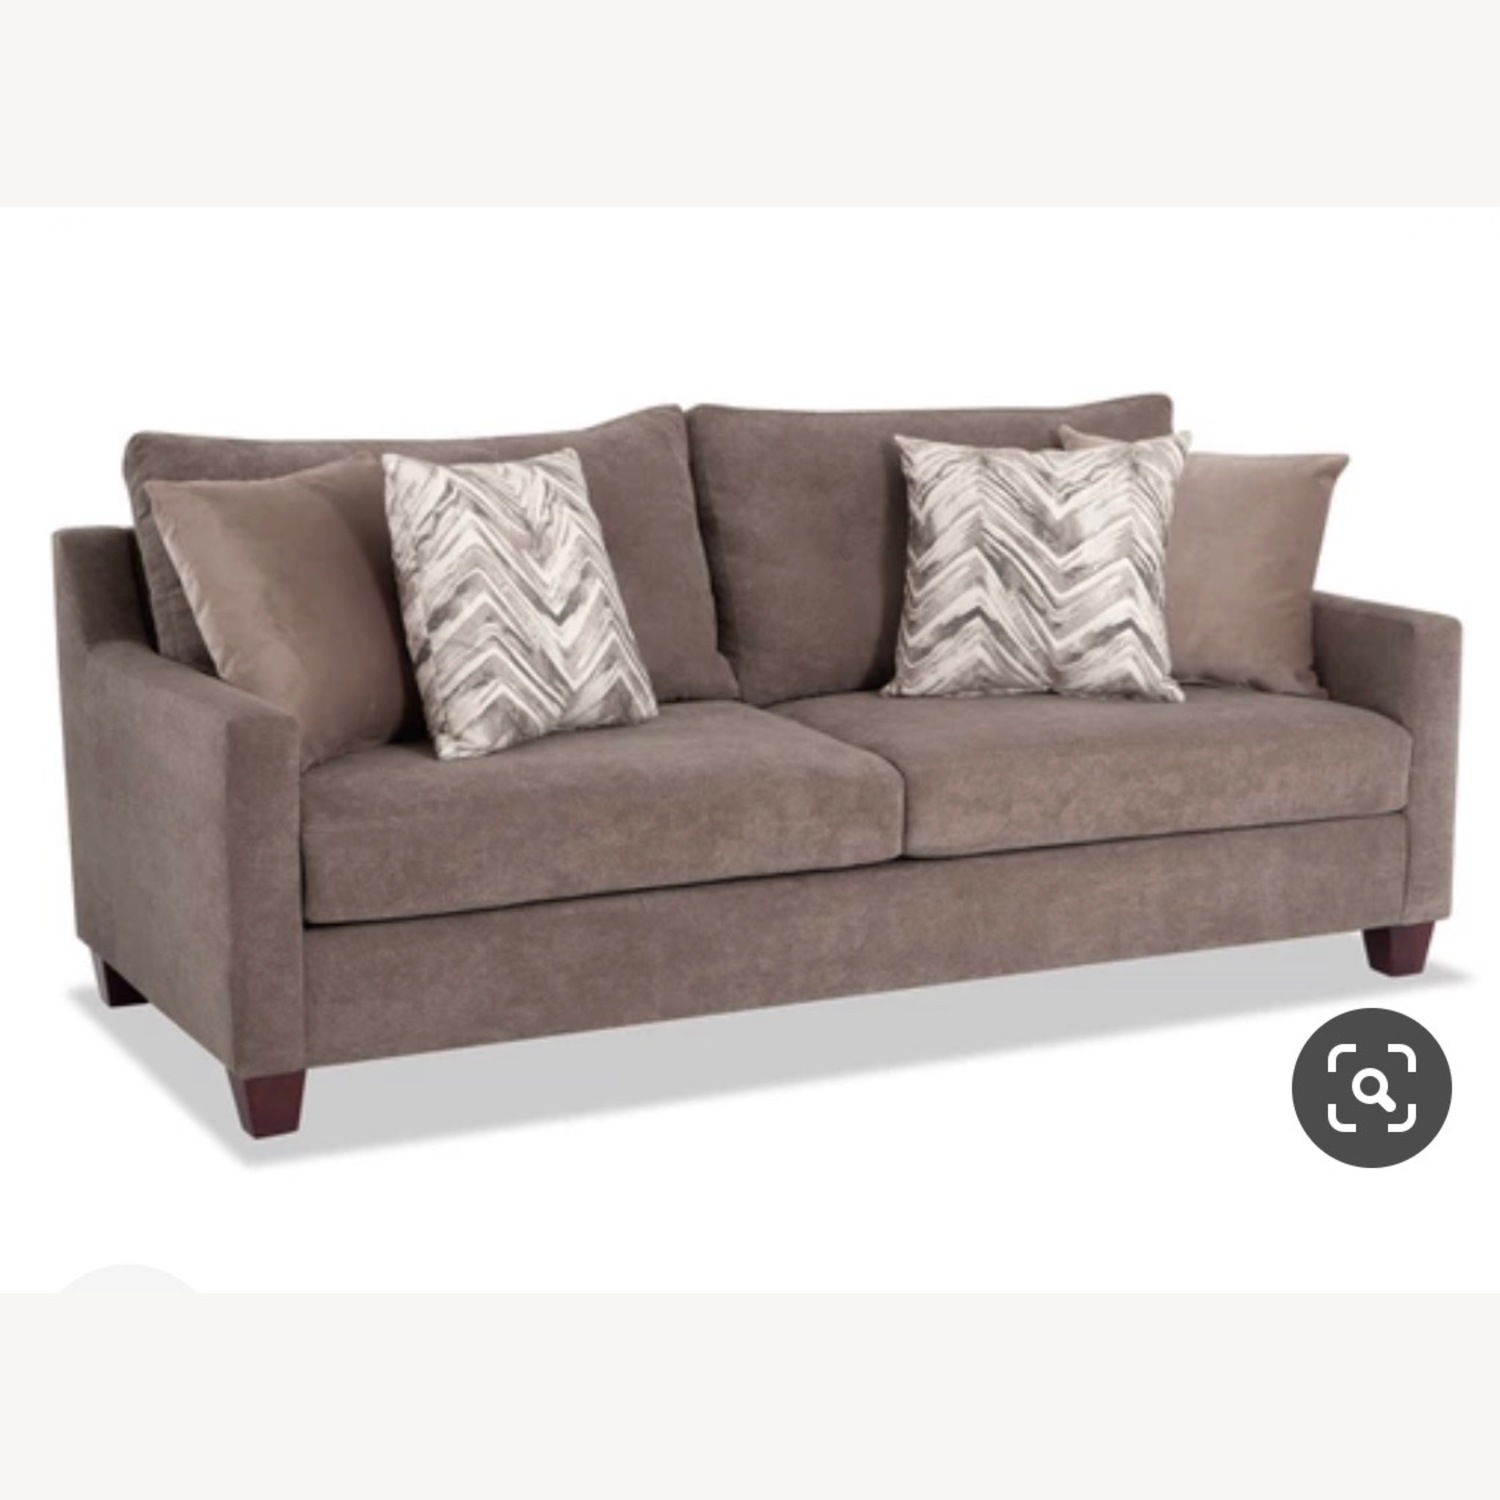 Bob's Discount Furniture Sofa - image-4